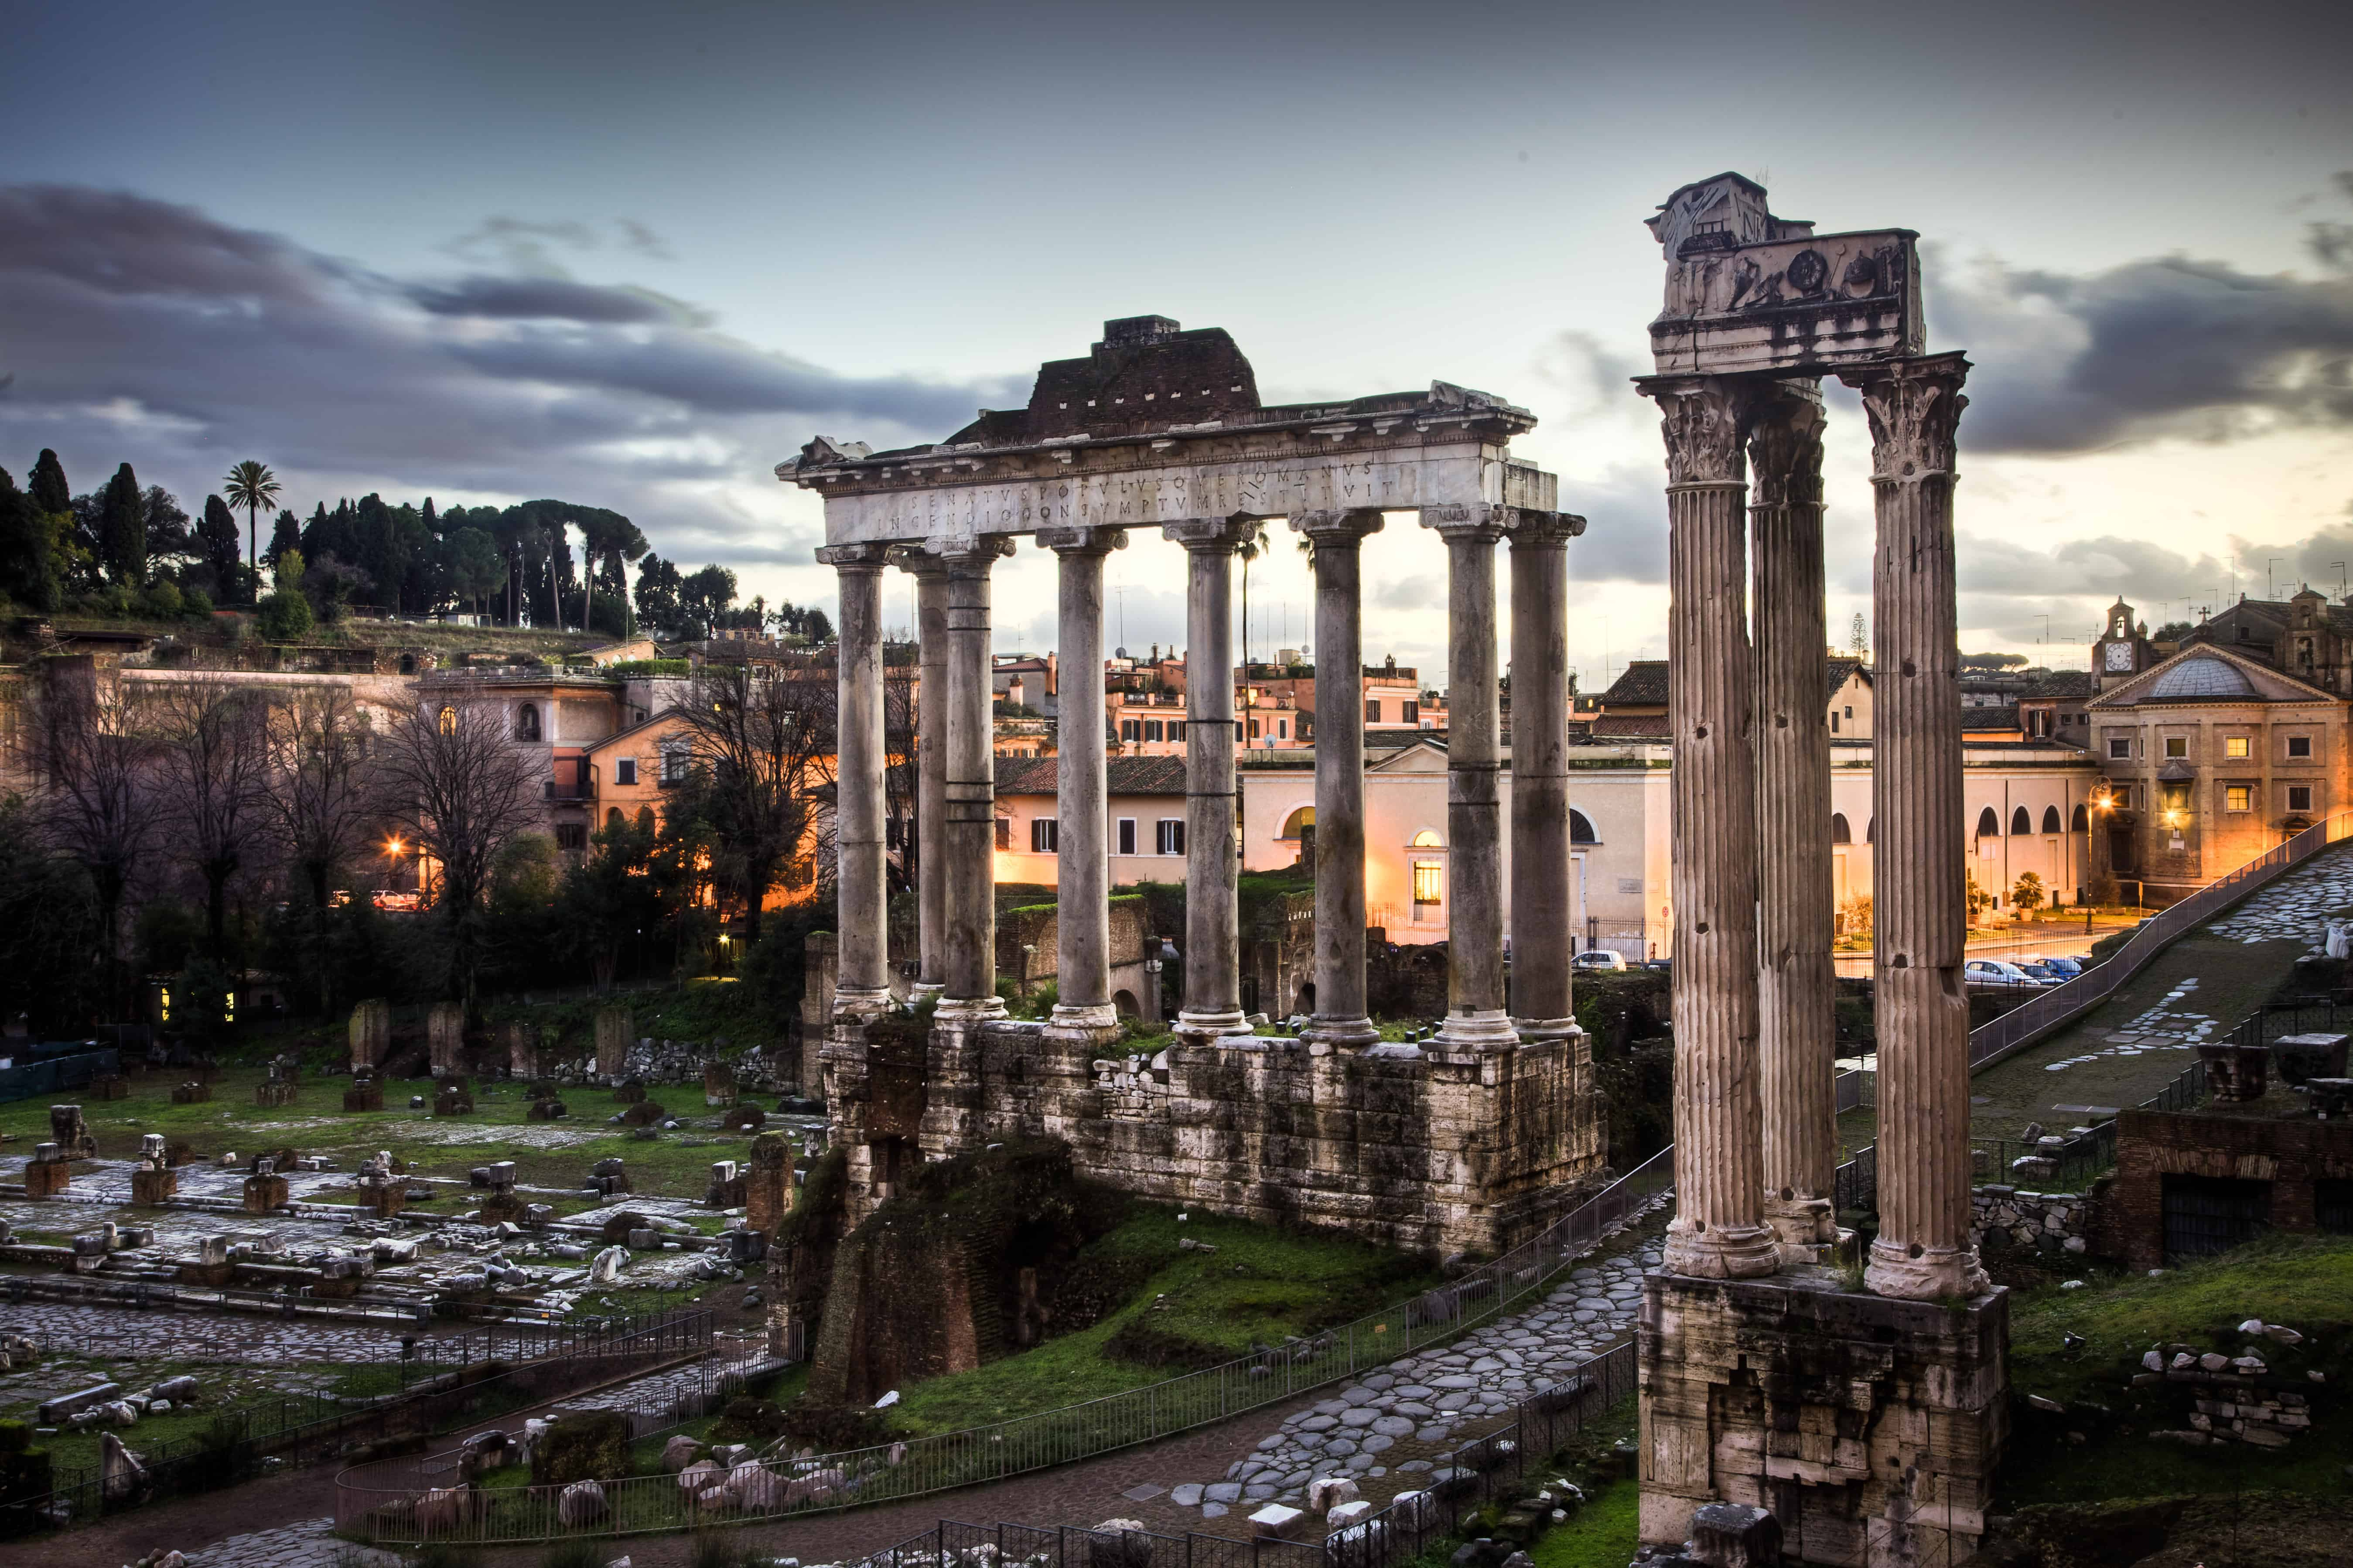 45 Things to see in Rome other than the Vatican